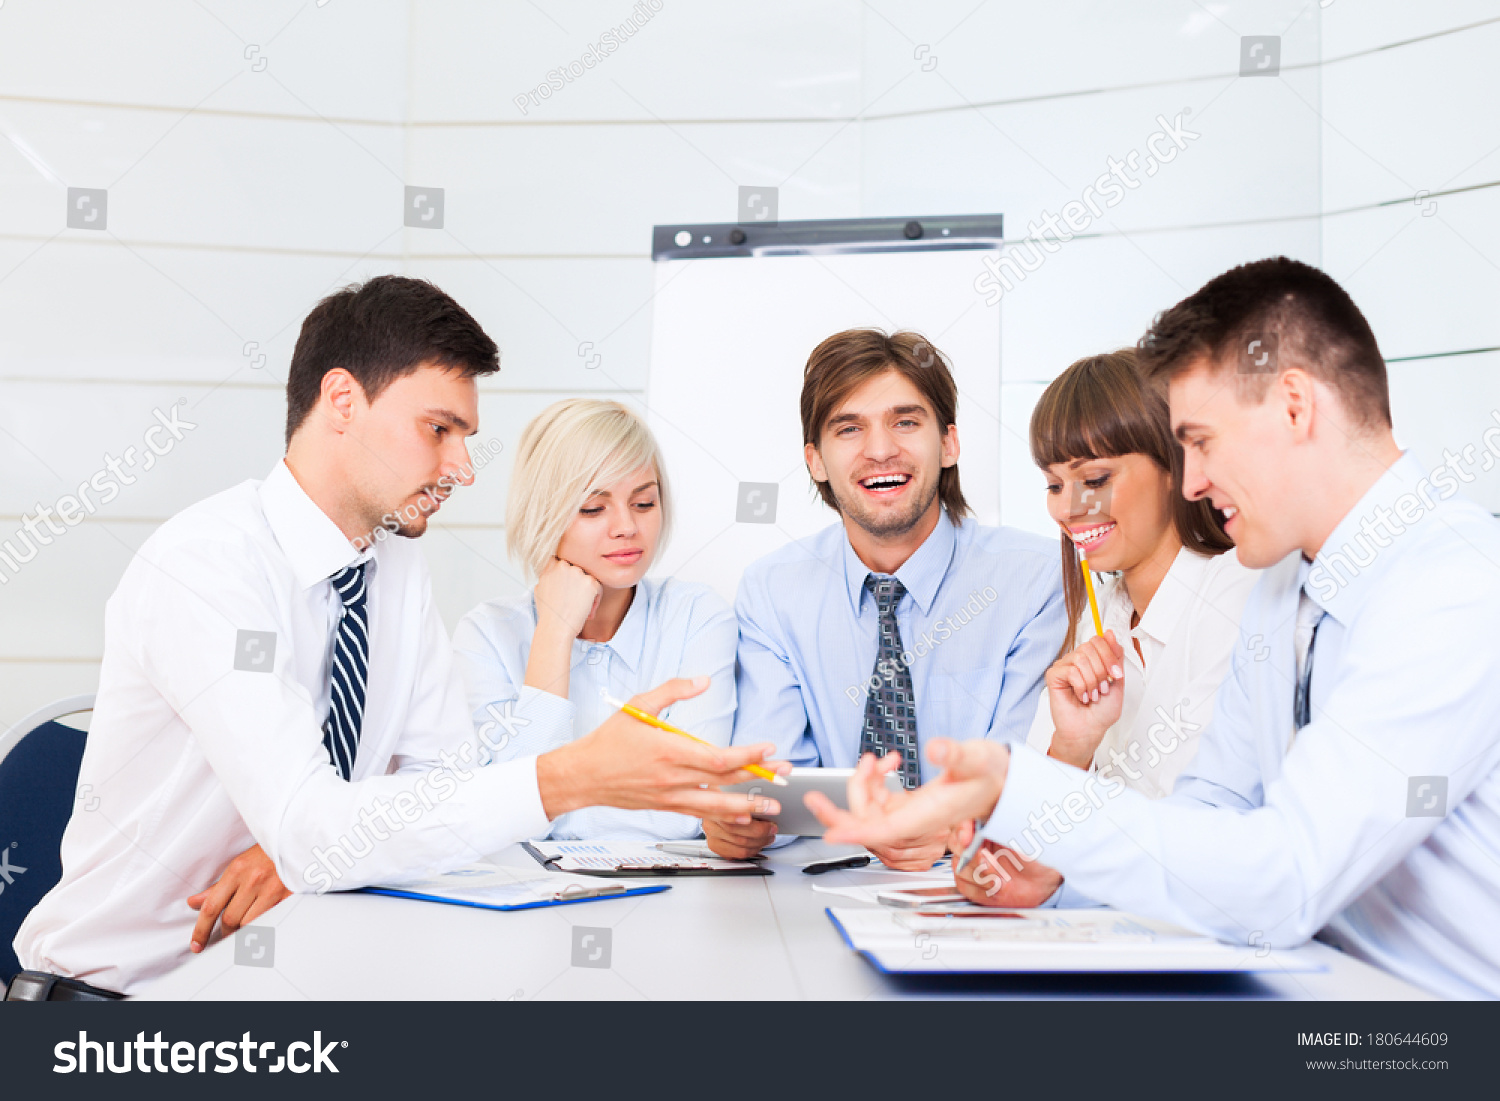 Business Group Discussion